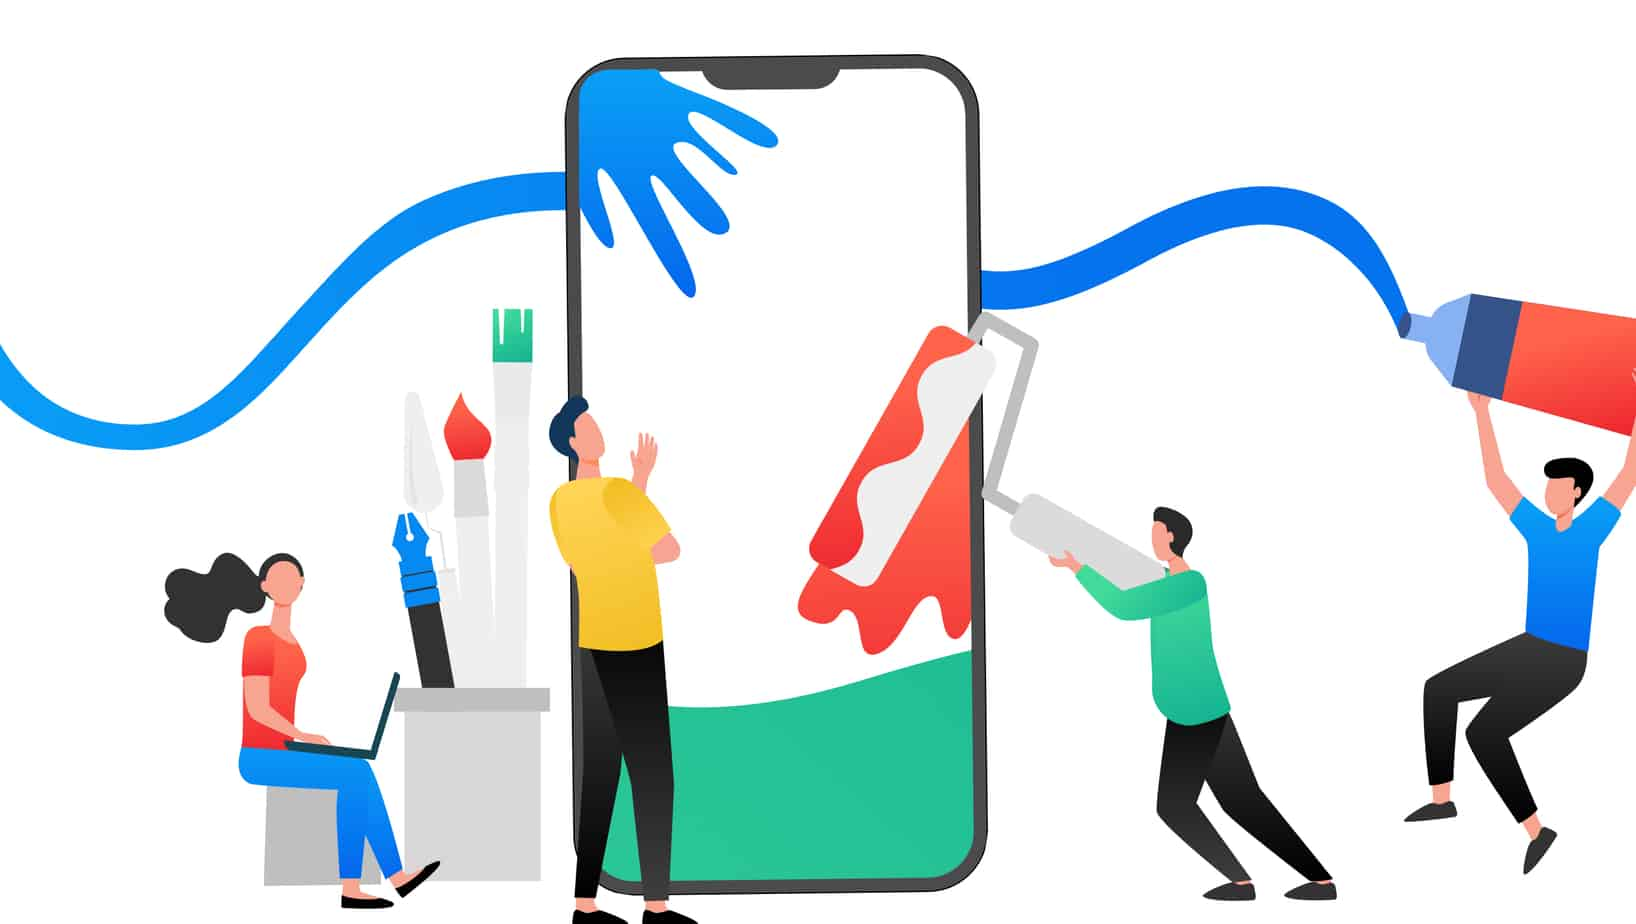 Top 3 trending colors for mobile apps